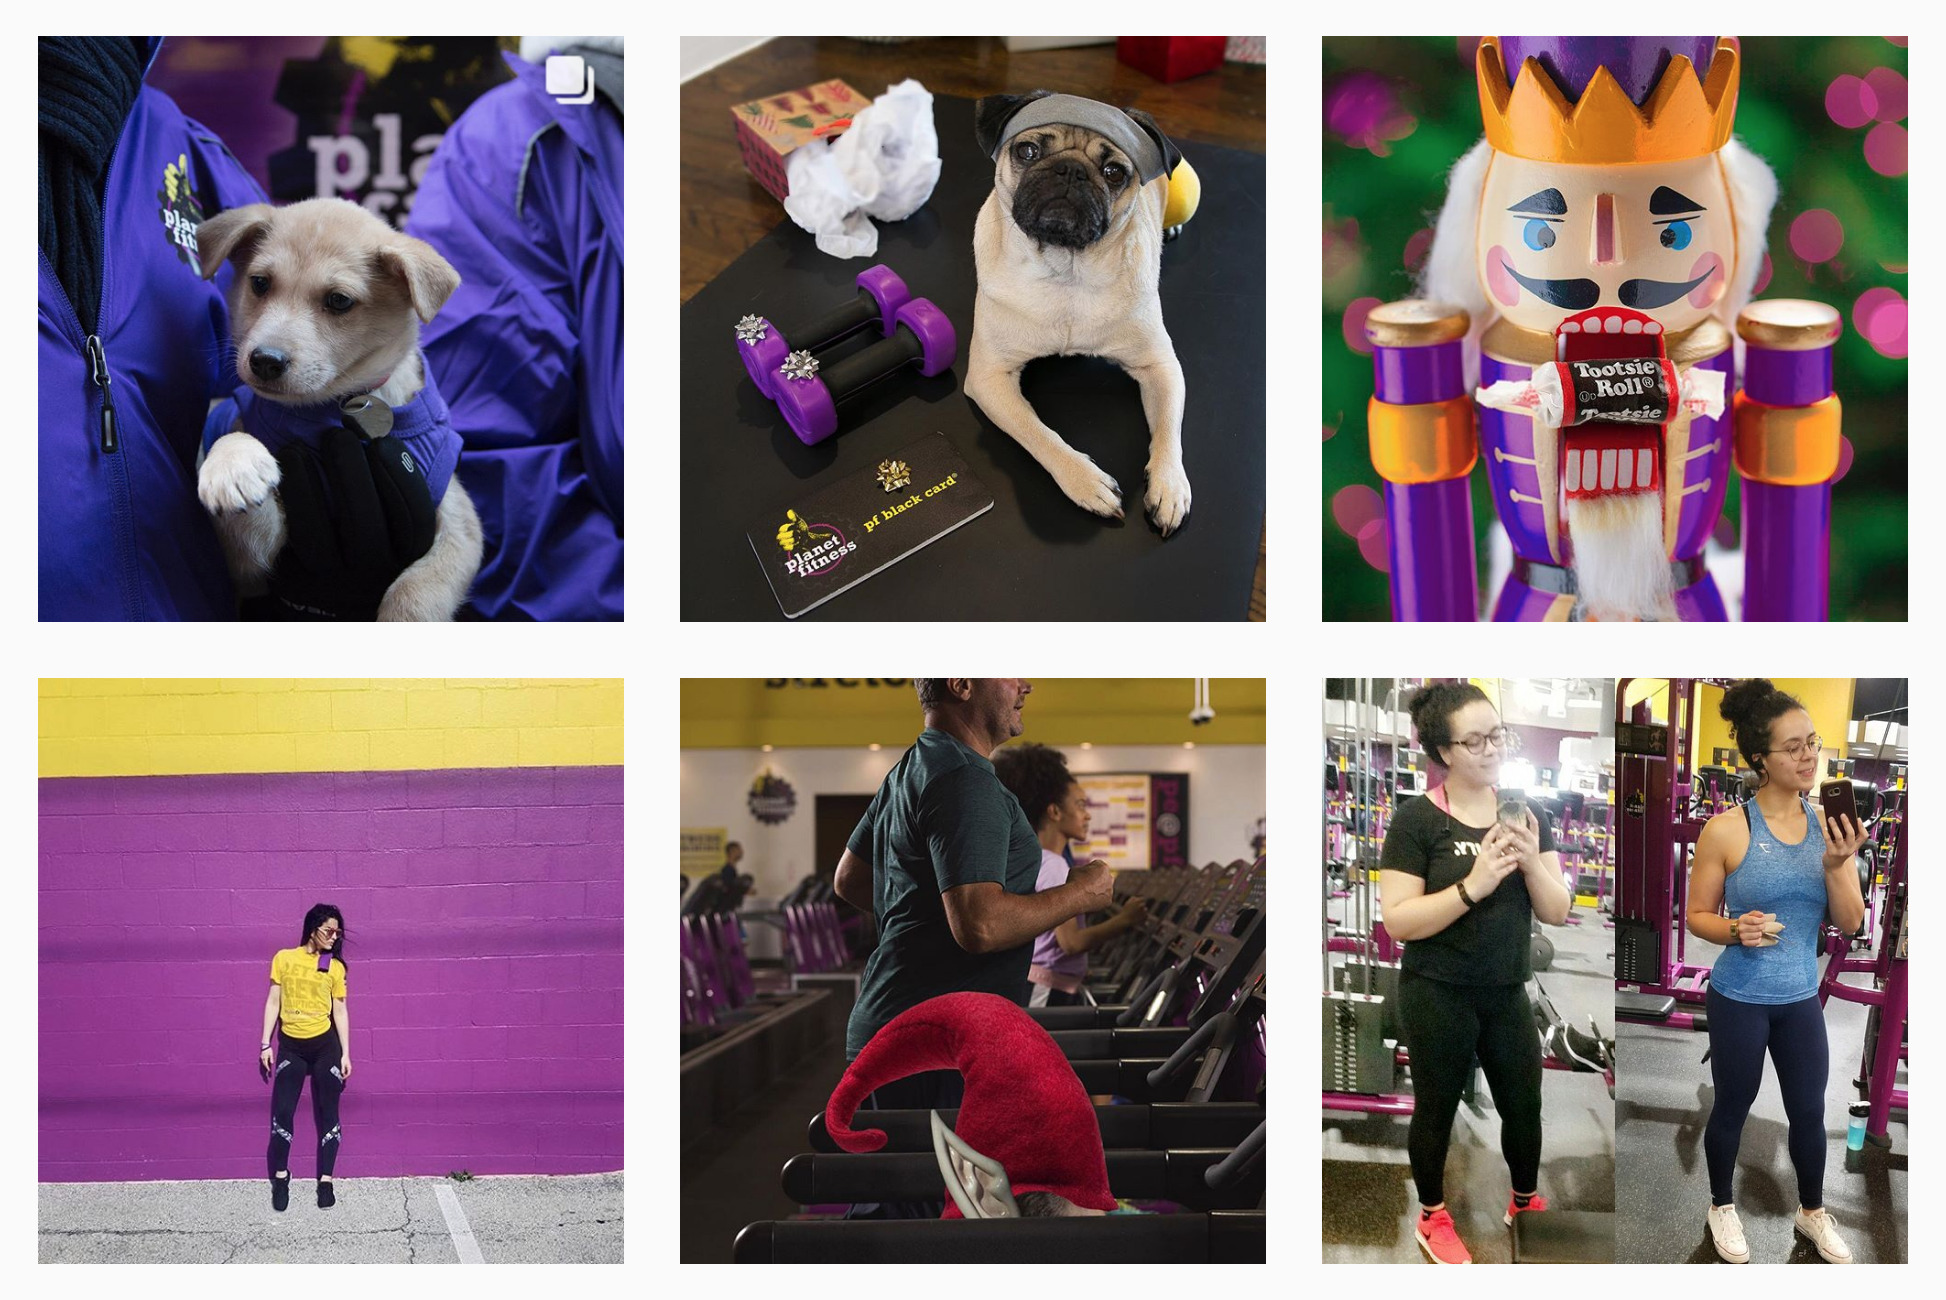 Planet Fitness Instagram posts